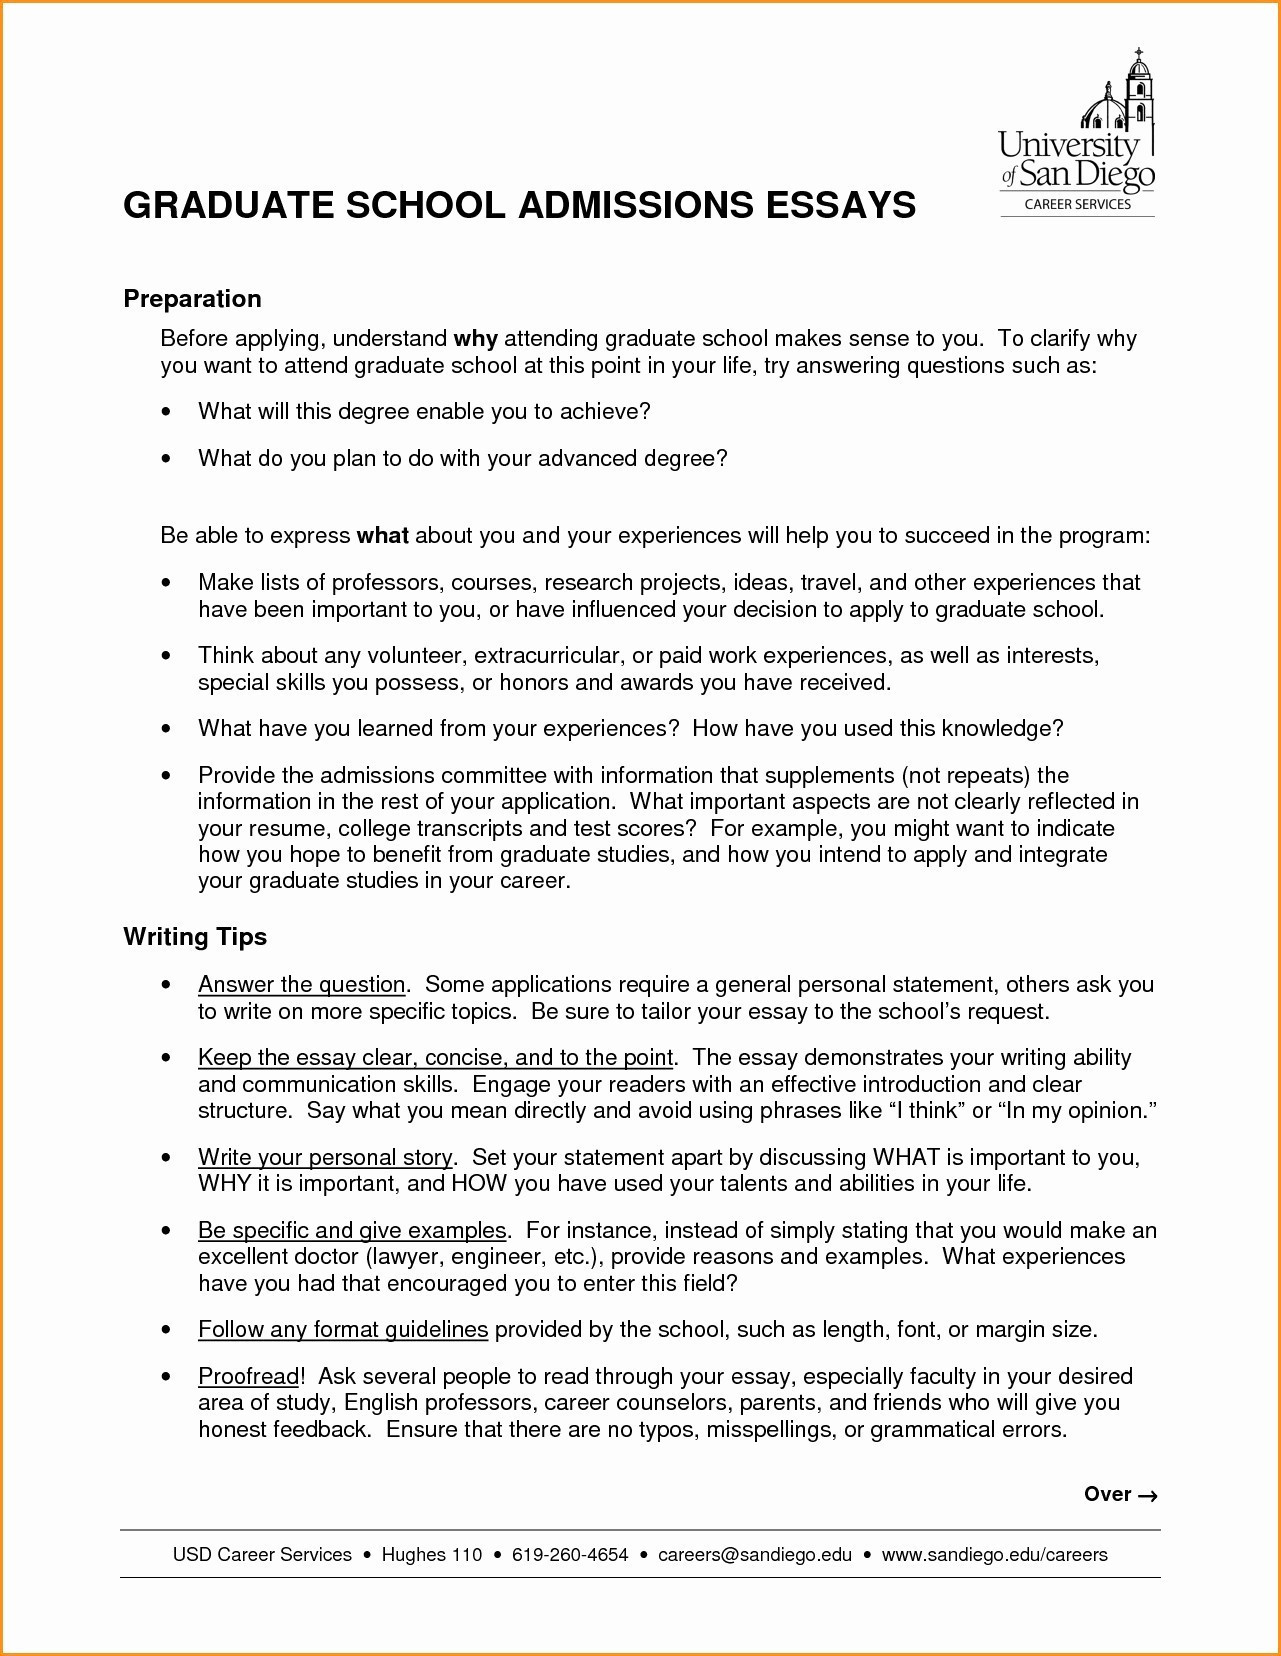 Resume Template for Letter Of Recommendation - Literarywondrous Grad School Re Mendation Letter Sample